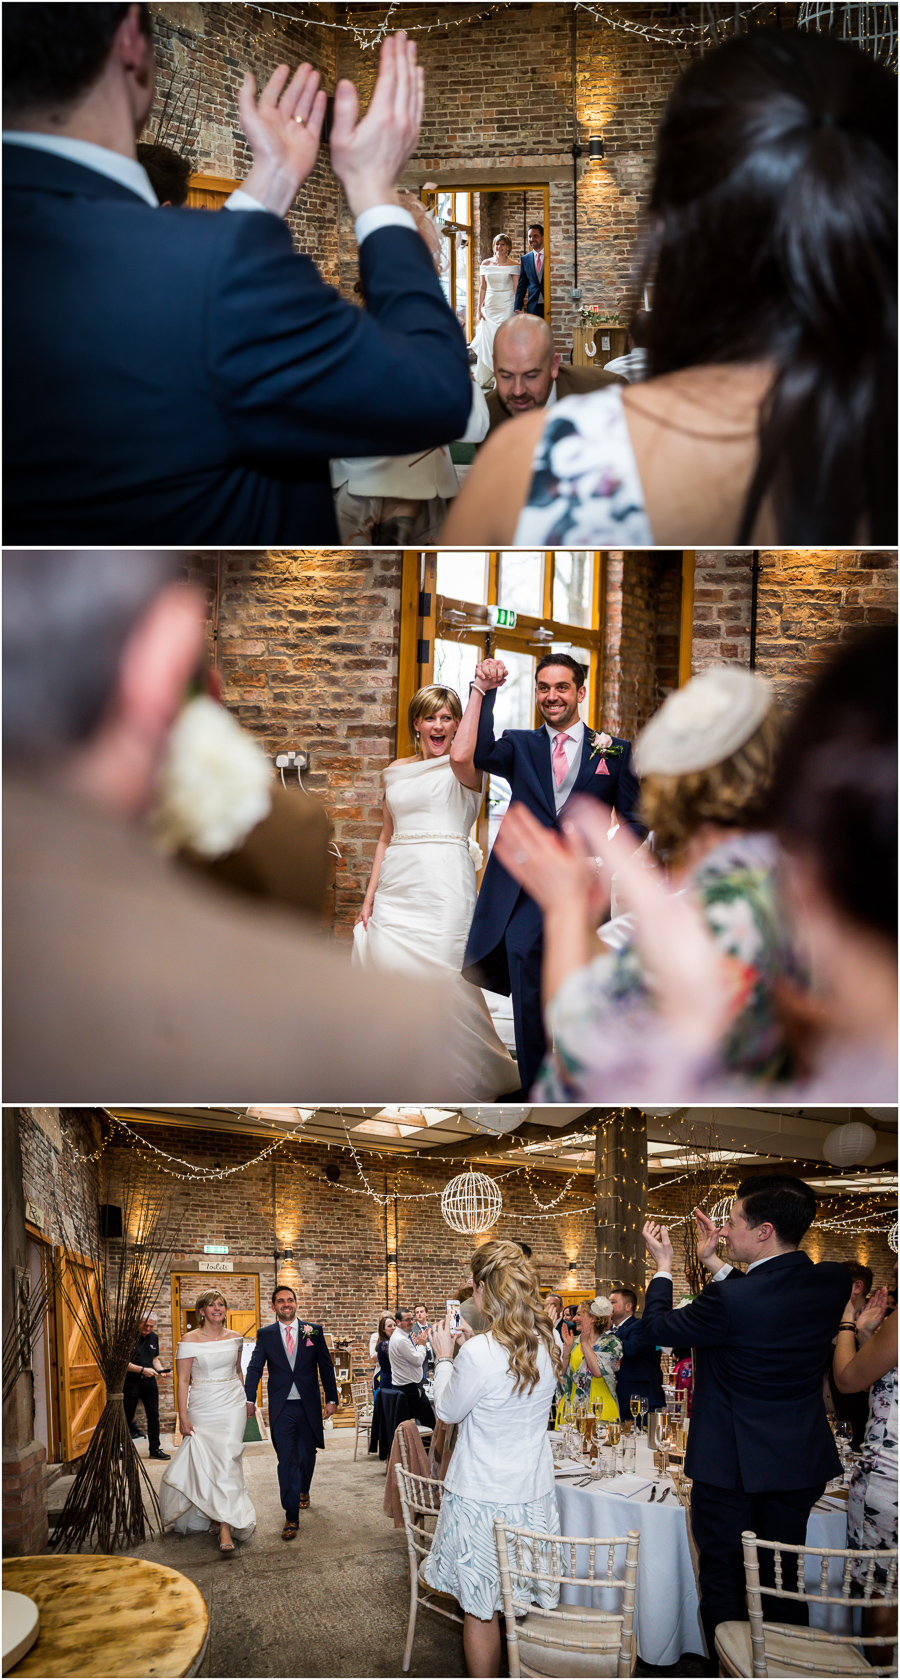 yorkshire wedding photographer - couple entering the wedding breakfast room in Barmbyfields barns